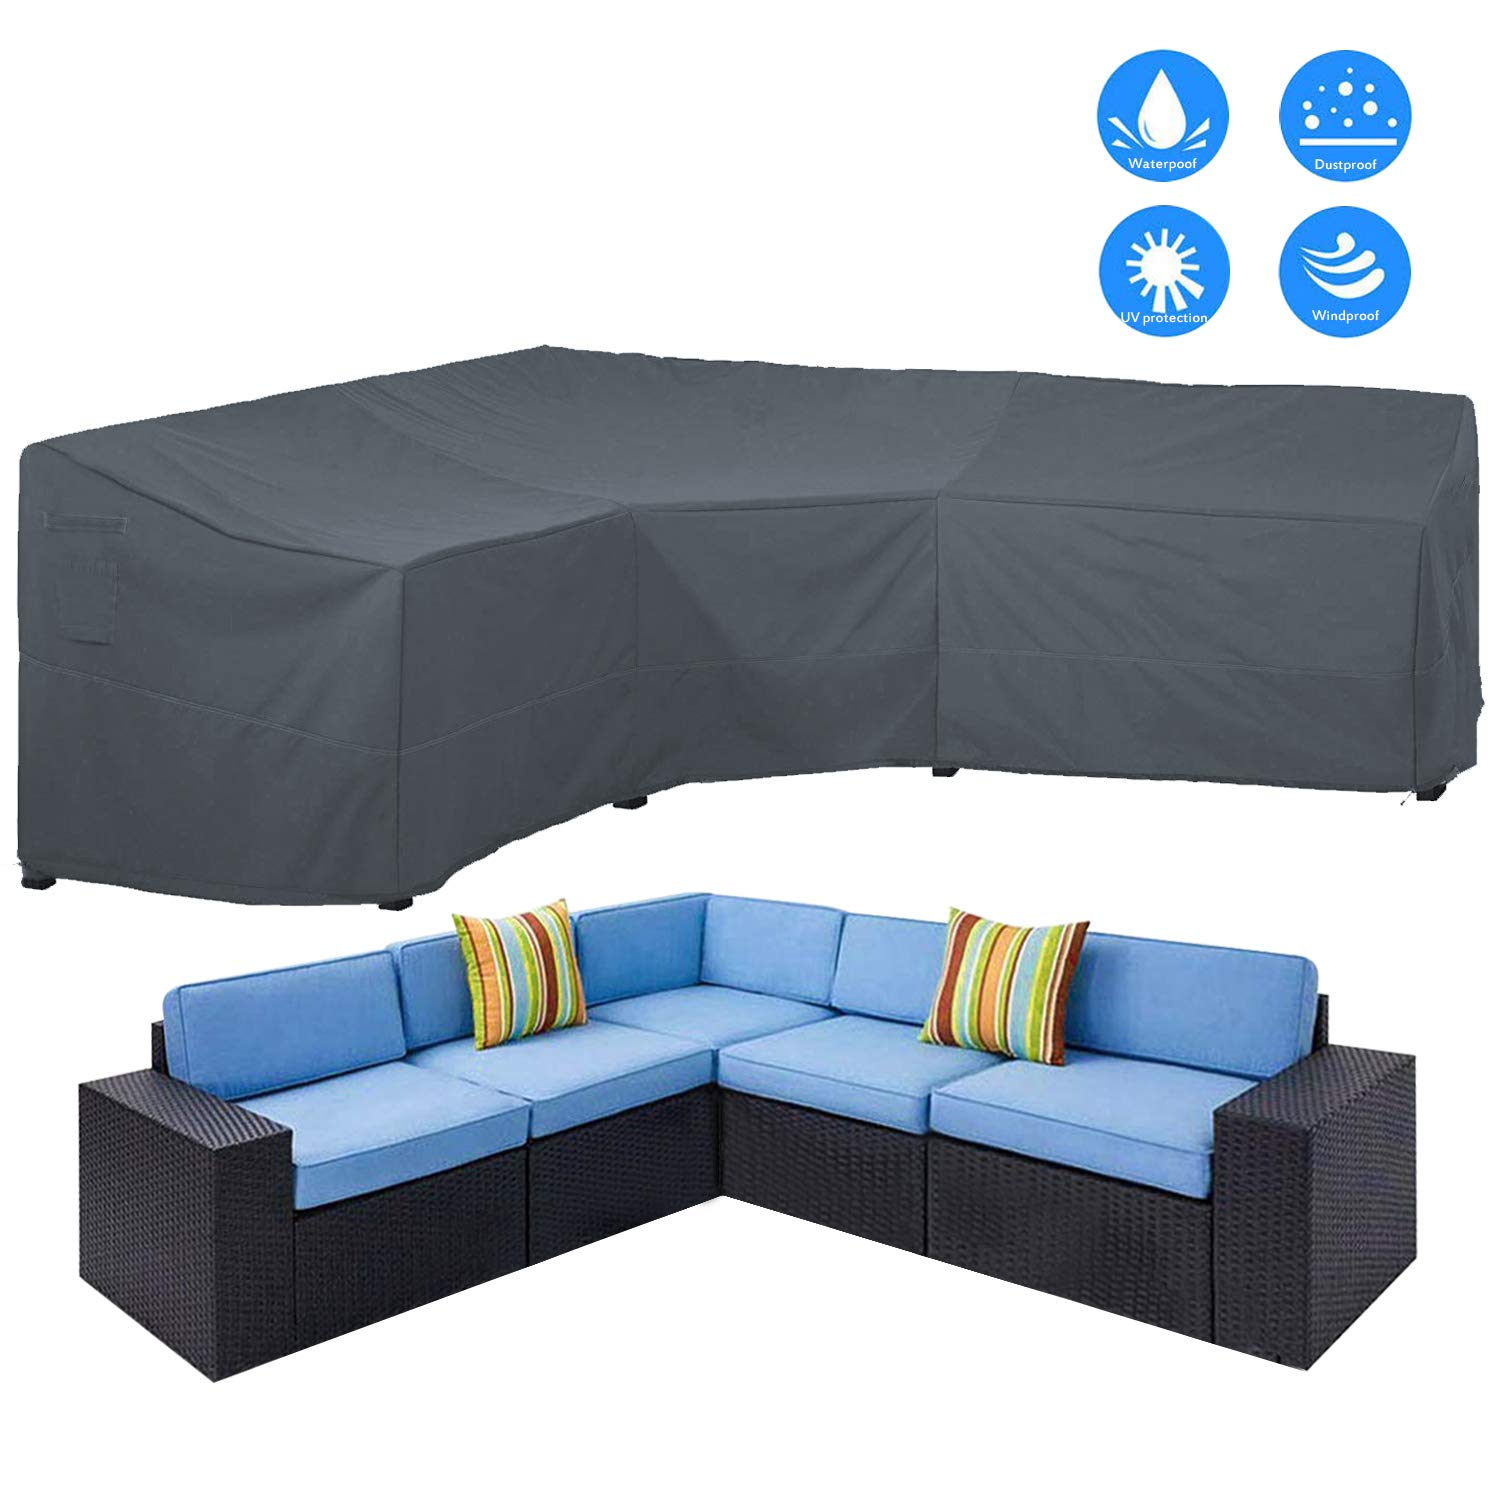 "AKEfit Patio Furniture Cover Outdoor V-Shaped Sectional Sofa Cover Premium Waterproof Fabric Garden Couch Protector Grey 100"" L x 33.5"" D x 31"" H"